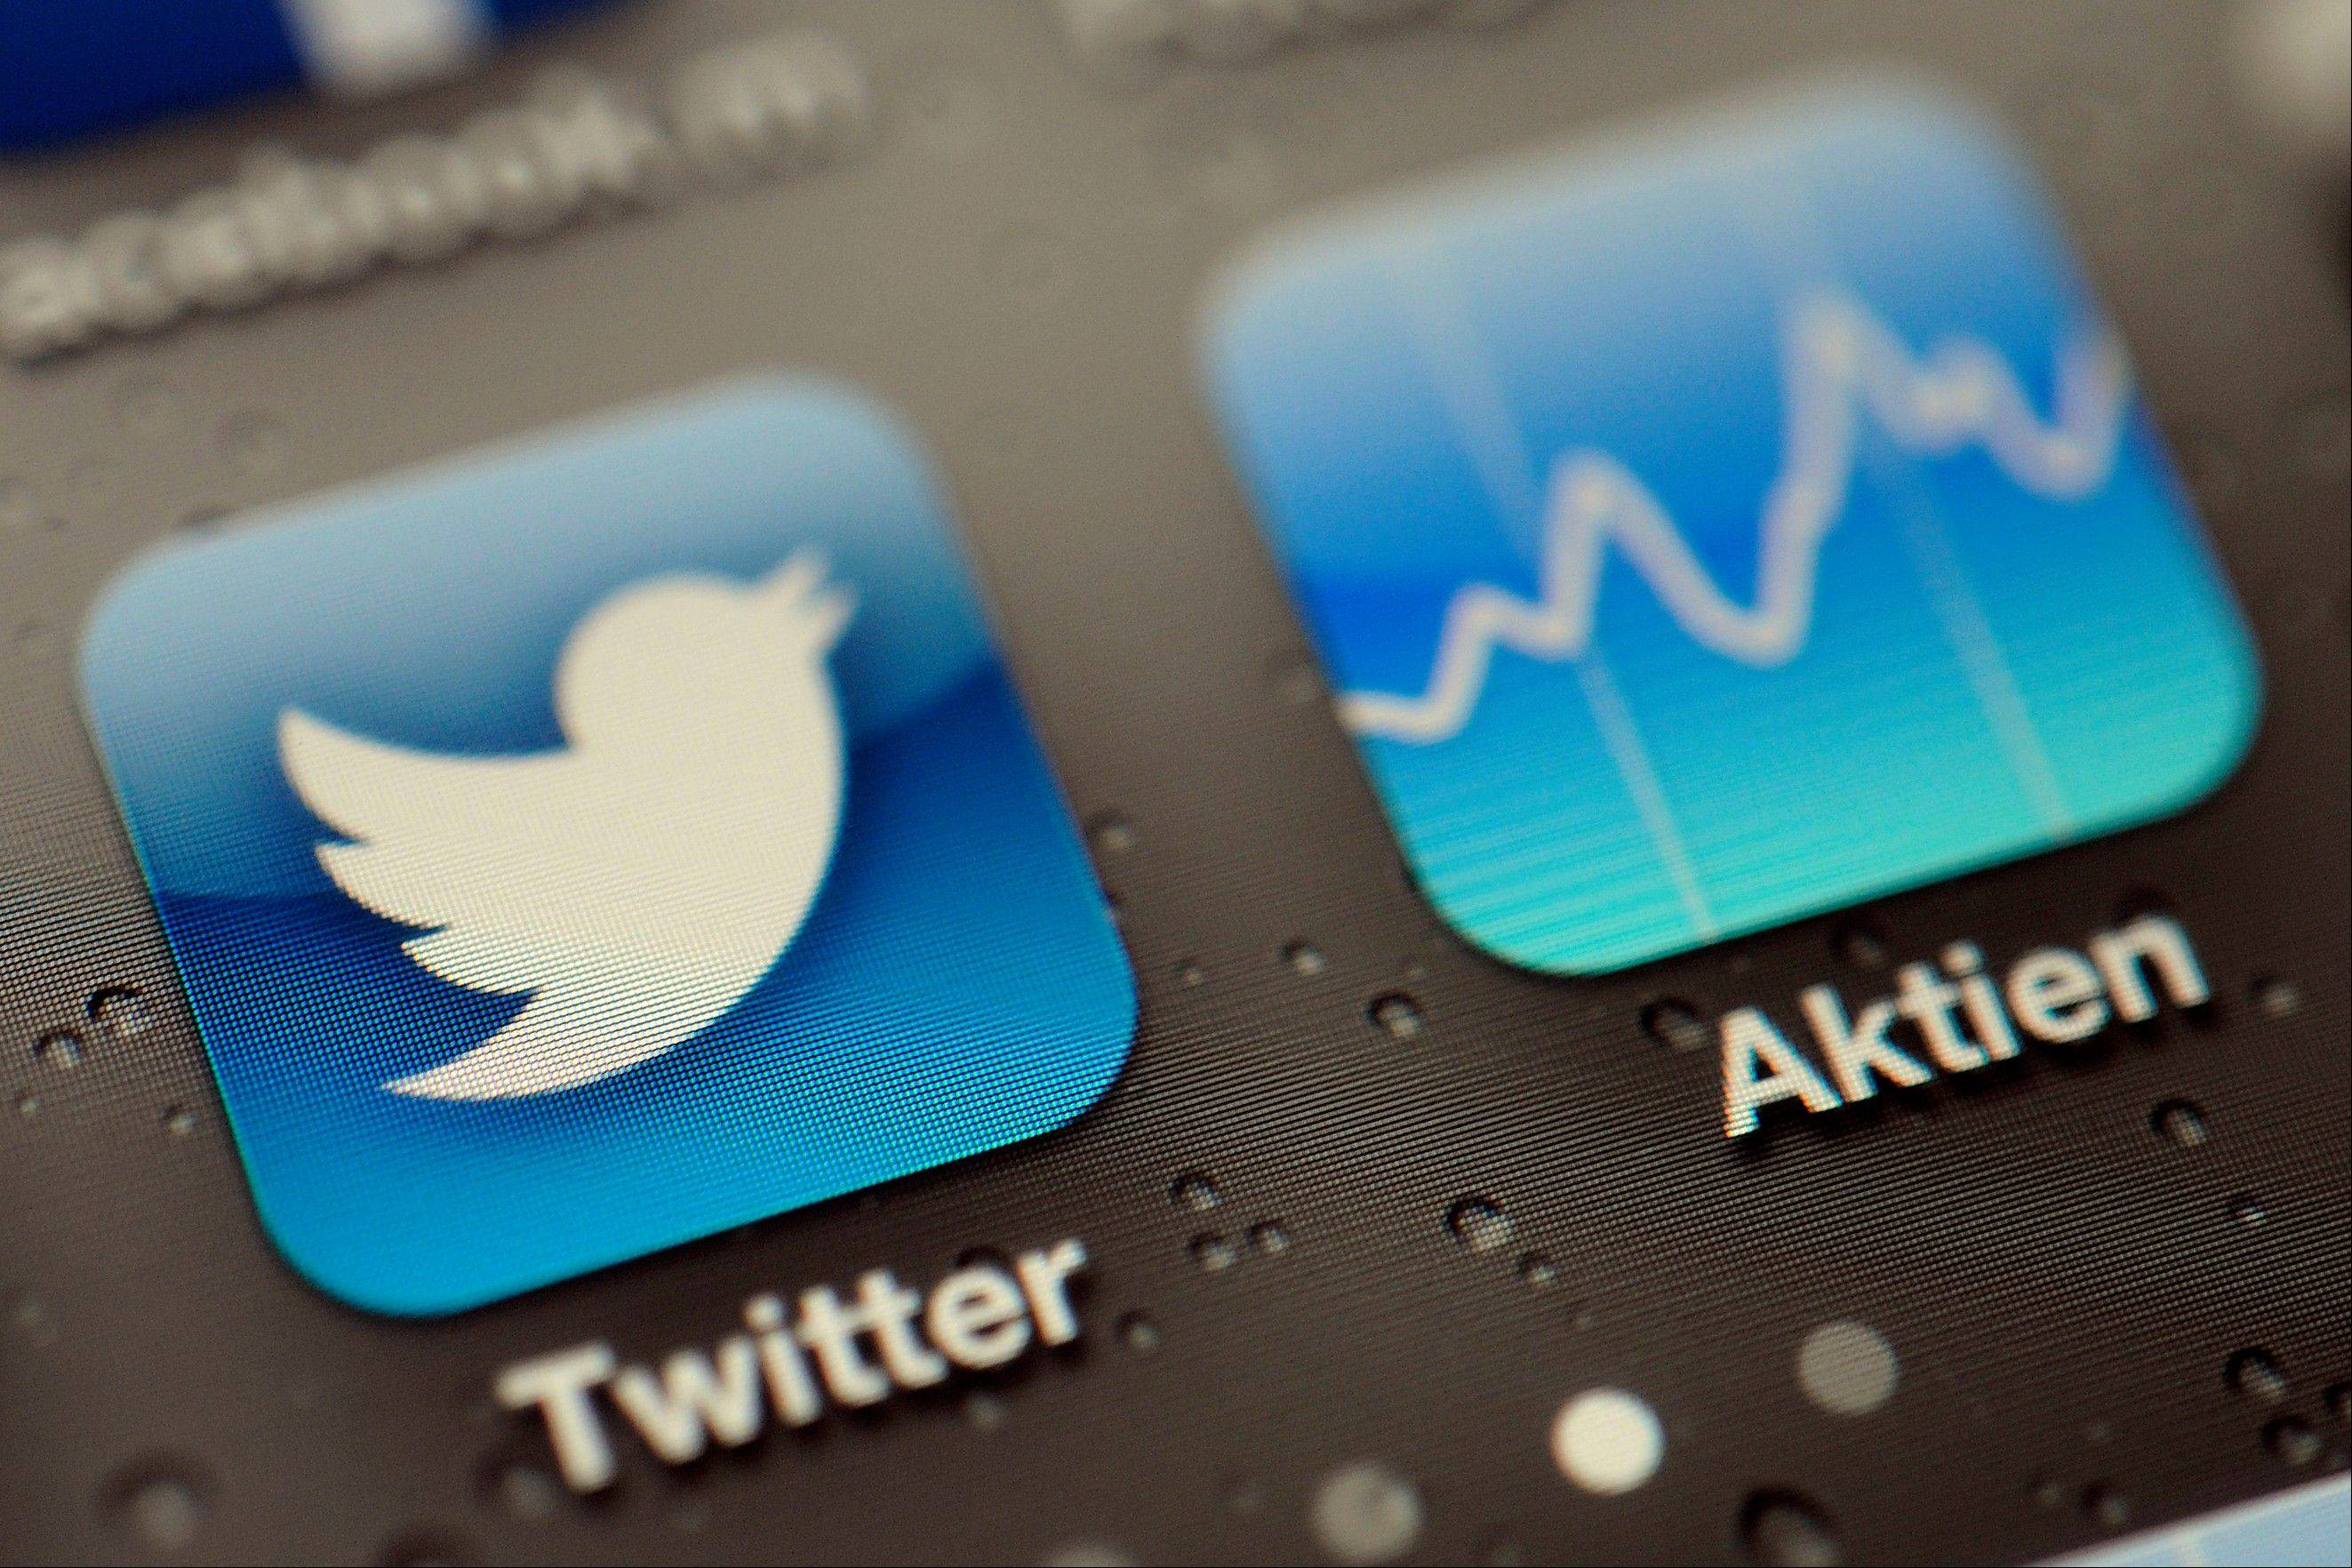 Twitter�s stock debut is the biggest coming-out party since Facebook, and Wall Street�s largest exchanges are fighting to host it.